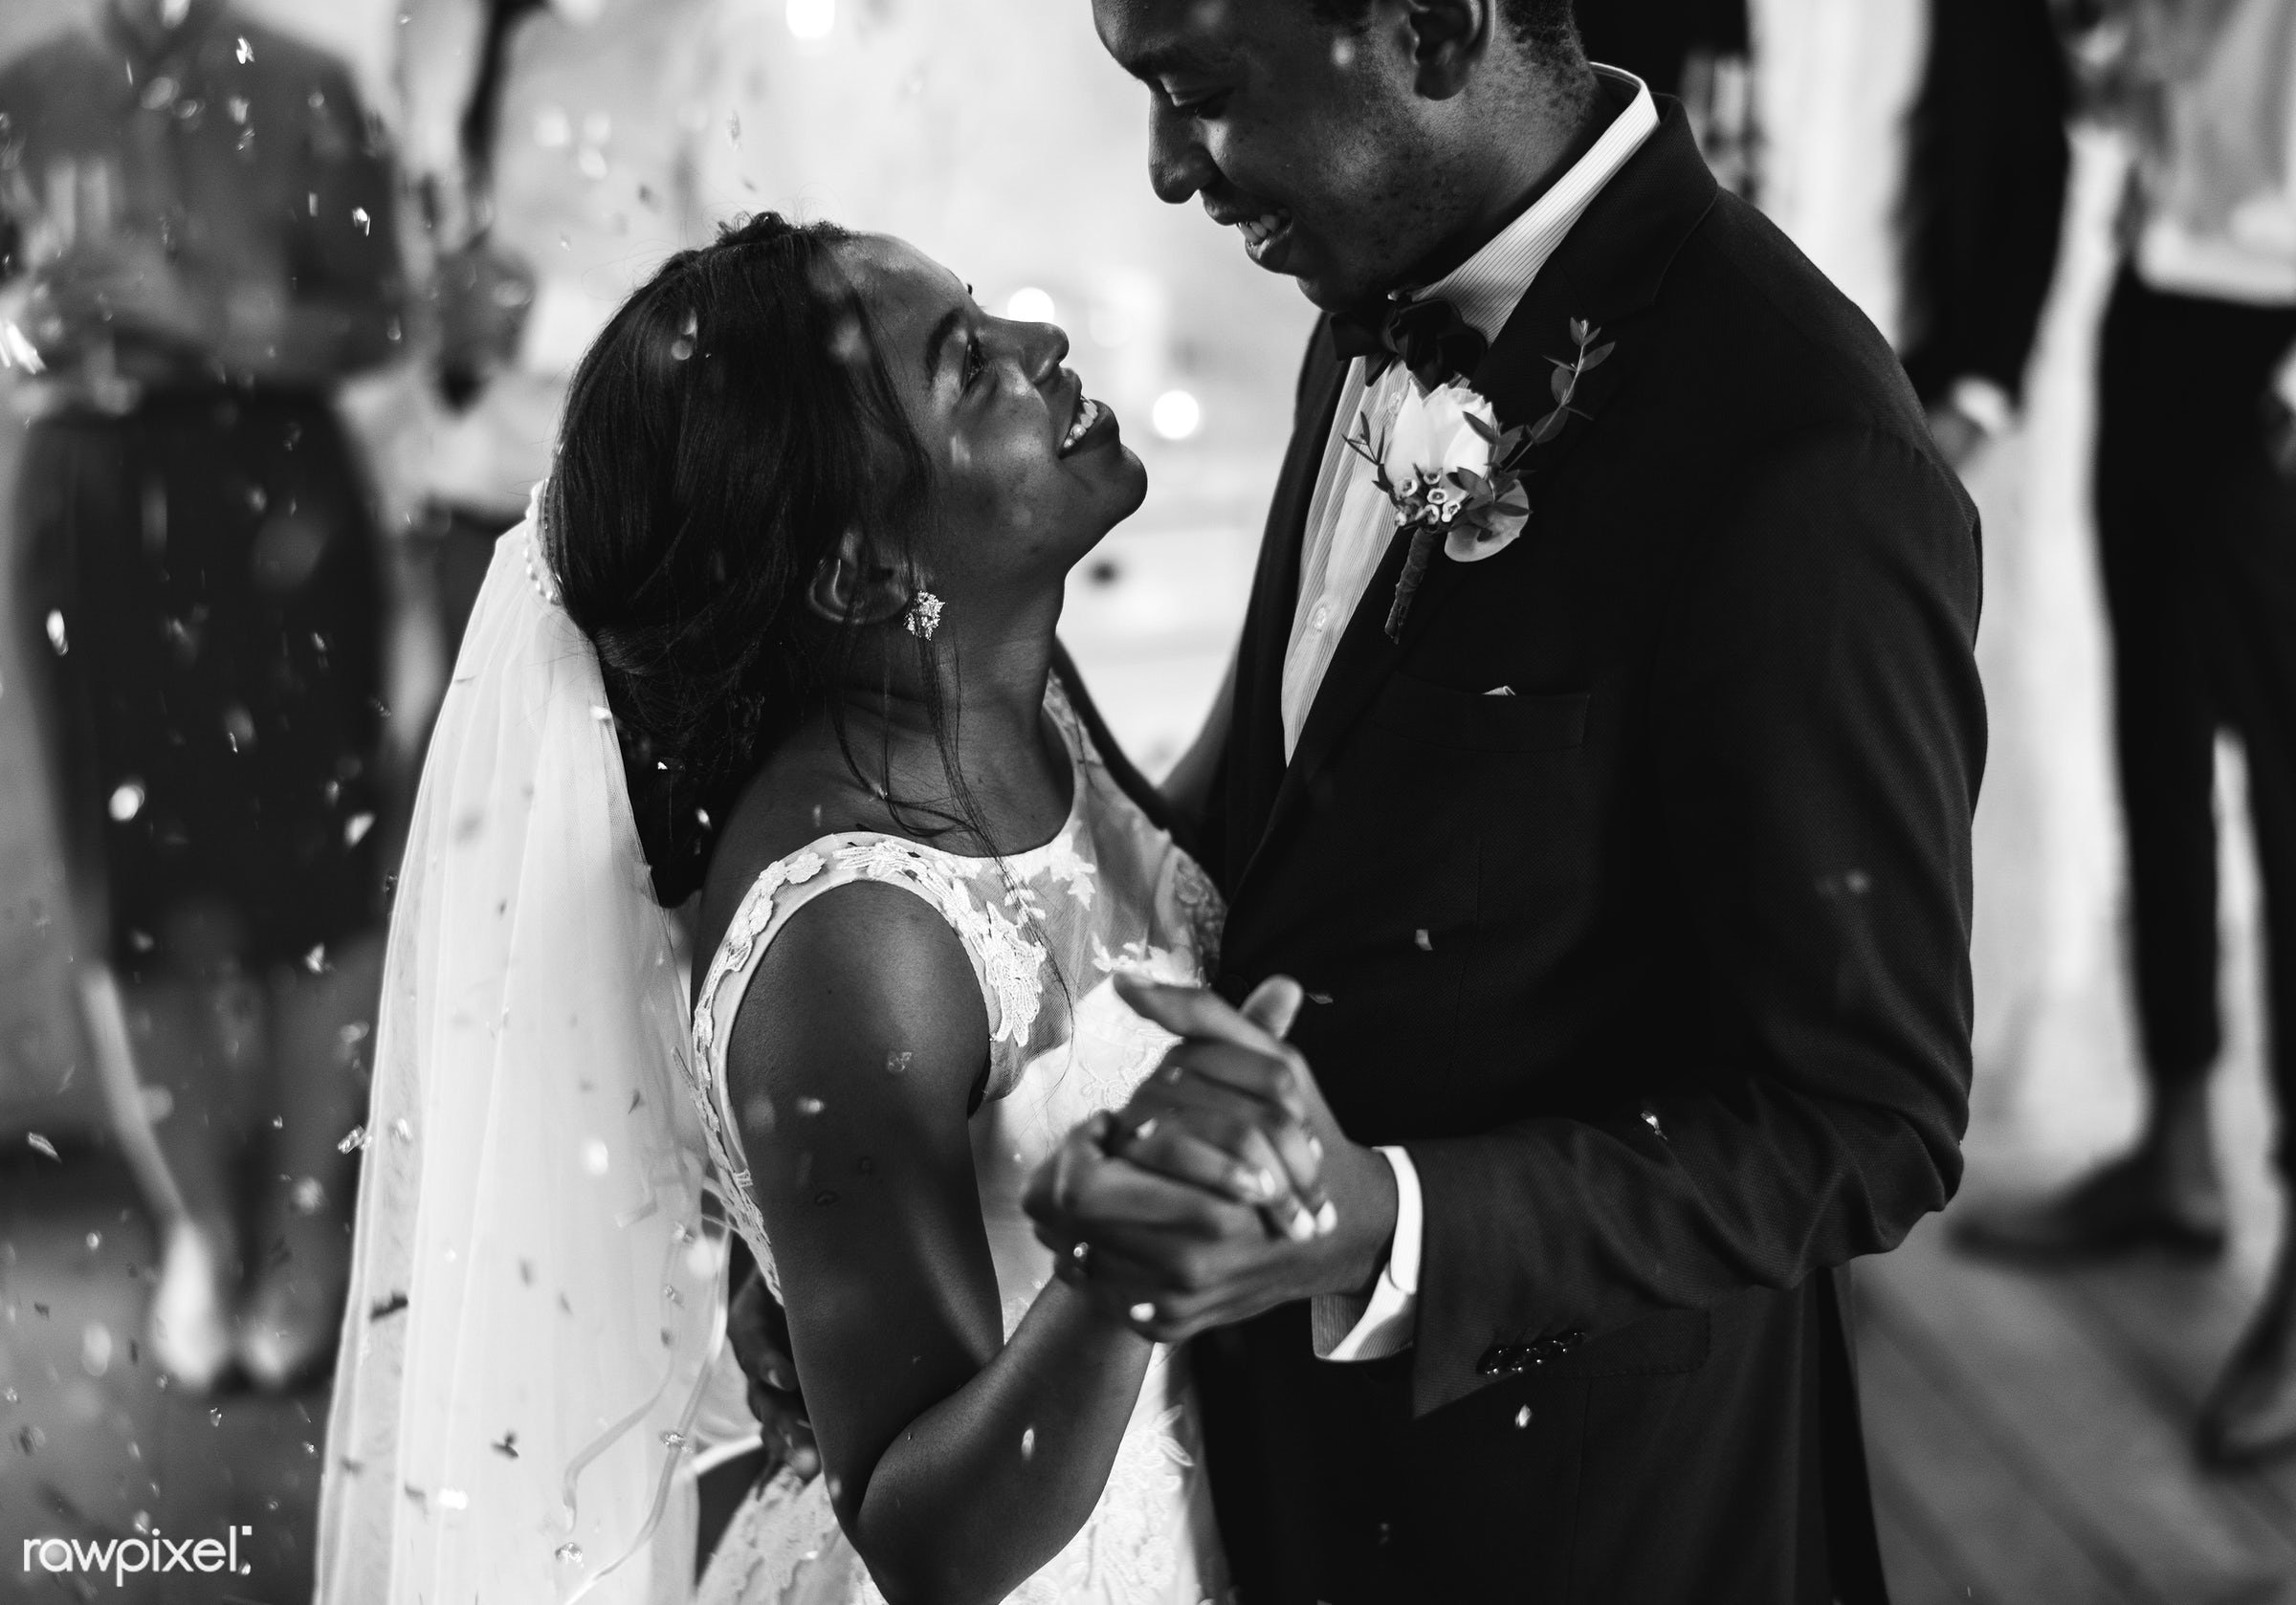 Black couple dancing on their wedding day - wedding, union, marriage, bride, groom, couple, spouse, even, celebration, love...